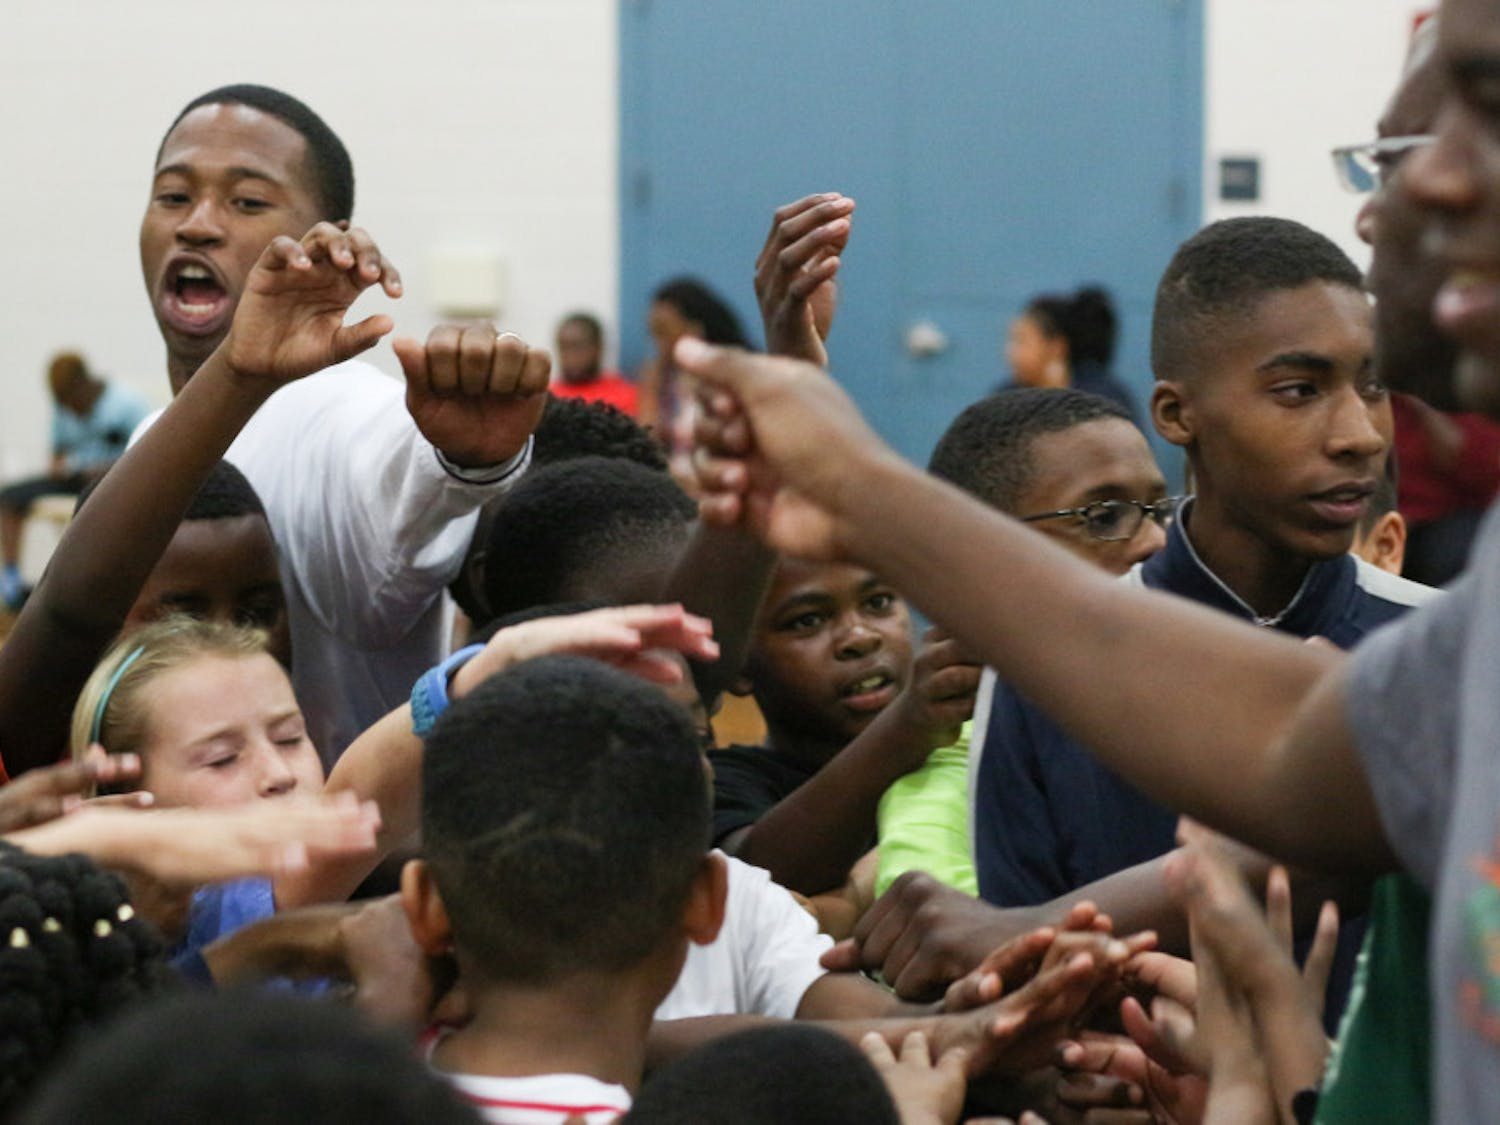 """From left: Ron Larris, a 30-year-old trainer at Nigie Hoops and former Gainesville High School basketball player, cheers """"Team!"""" with 46 kids and some Eastside High School basketball coaches during a free basketball clinic held at the Martin Luther King Jr. Multipurpose Center on Monday night."""